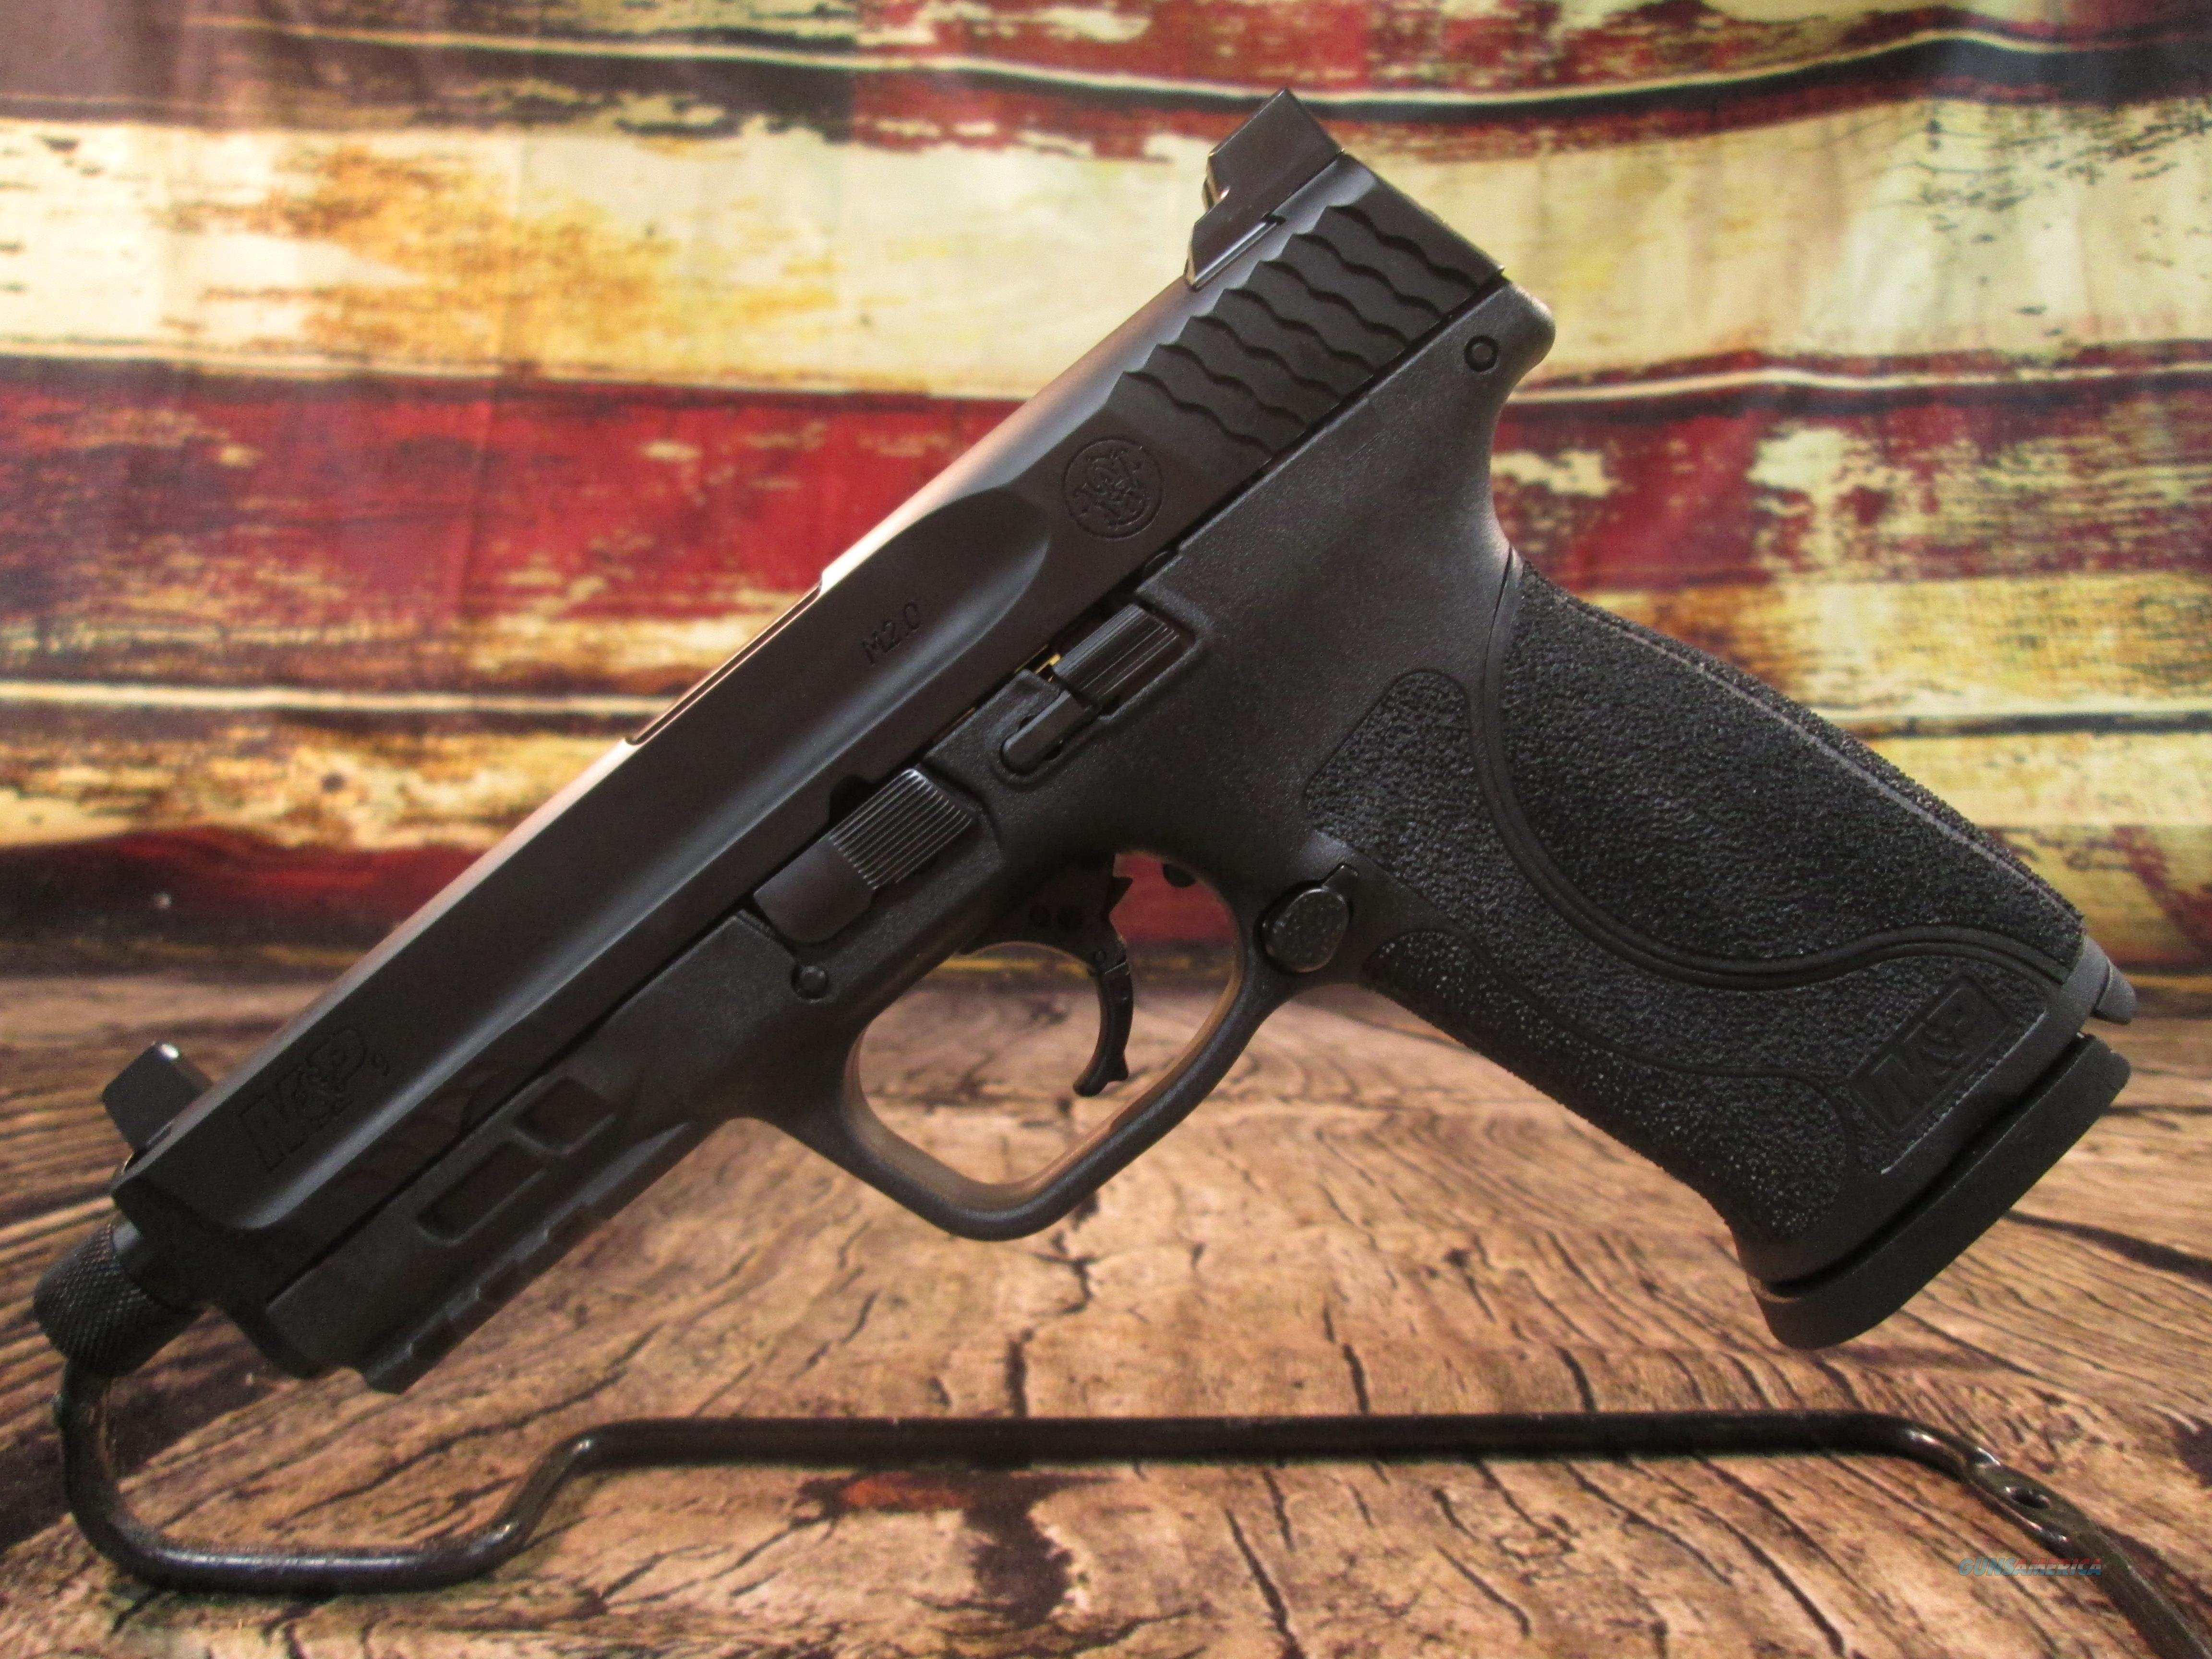 SMITH & WESSON M&P 2.0 9MM WITH THREADED BARREL NEW (11770)  Guns > Pistols > Smith & Wesson Pistols - Autos > Polymer Frame